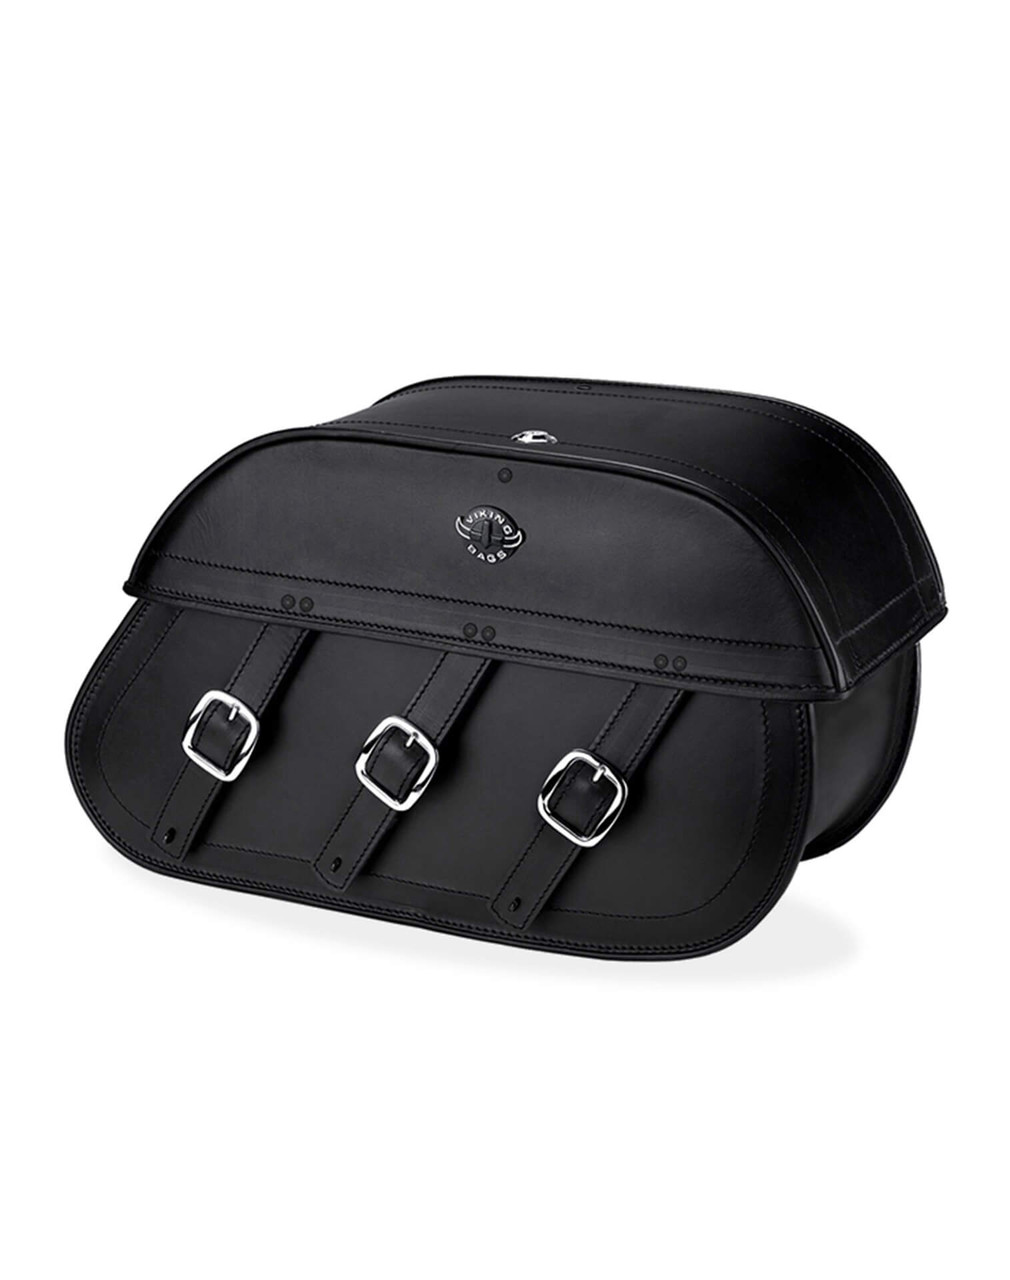 Victory High Ball Trianon Motorcycle Saddlebags Main Bag View